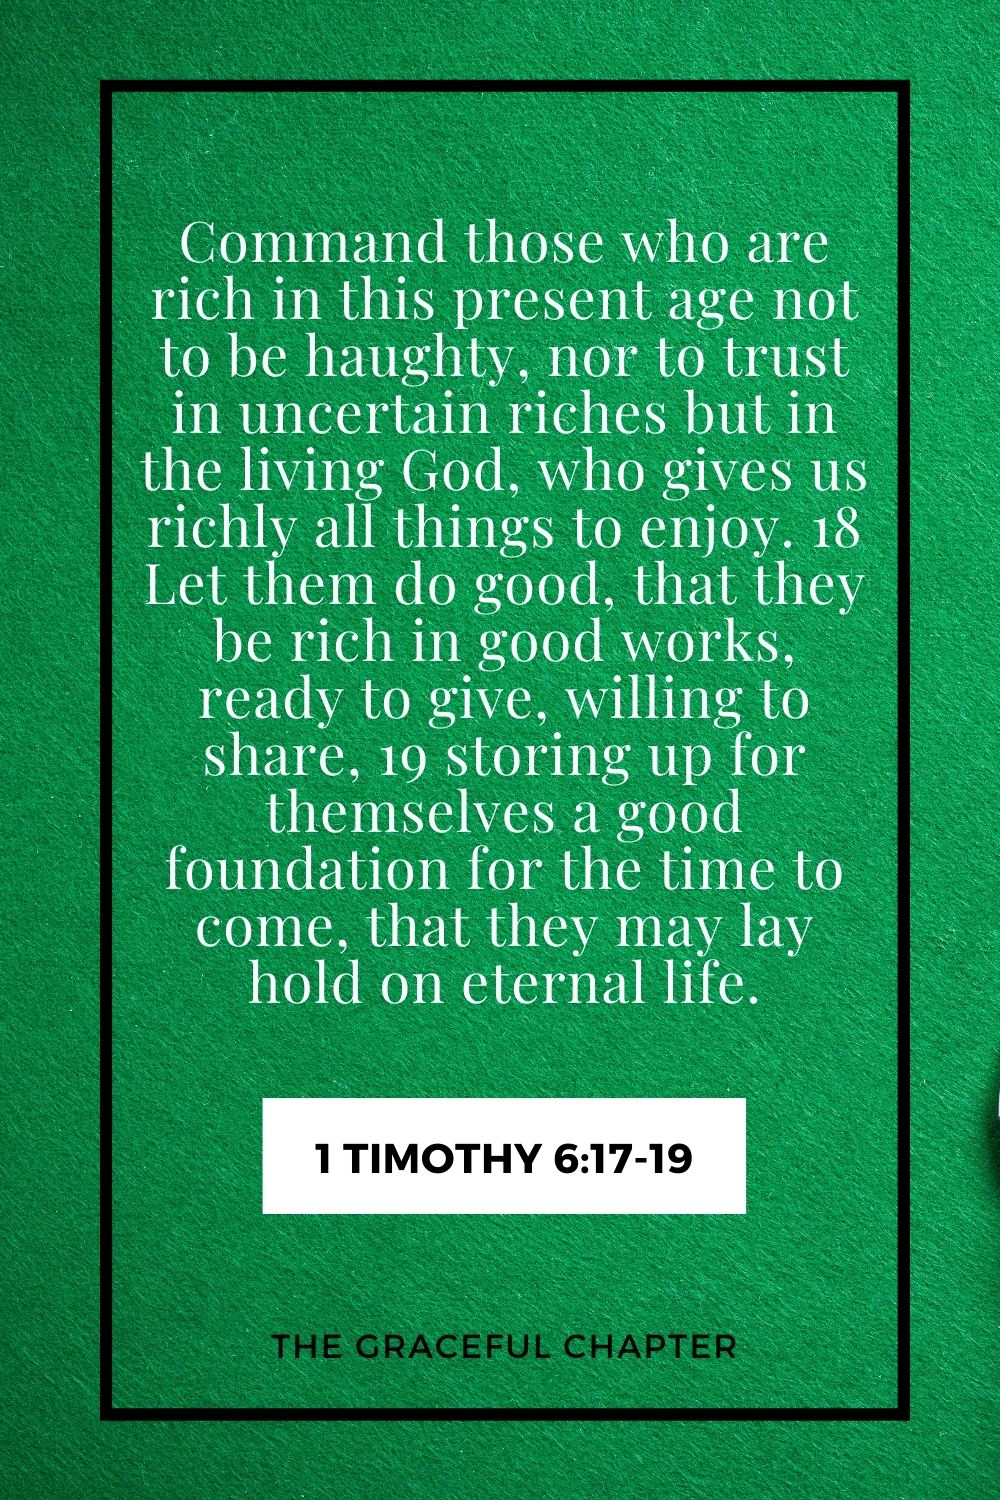 Command those who are rich in this present age not to be haughty, nor to trust in uncertain riches but in the living God, who gives us richly all things to enjoy. 18 Let them do good, that they be rich in good works, ready to give, willing to share, 19 storing up for themselves a good foundation for the time to come, that they may lay hold on eternal life. 1 Timothy 6:17-19